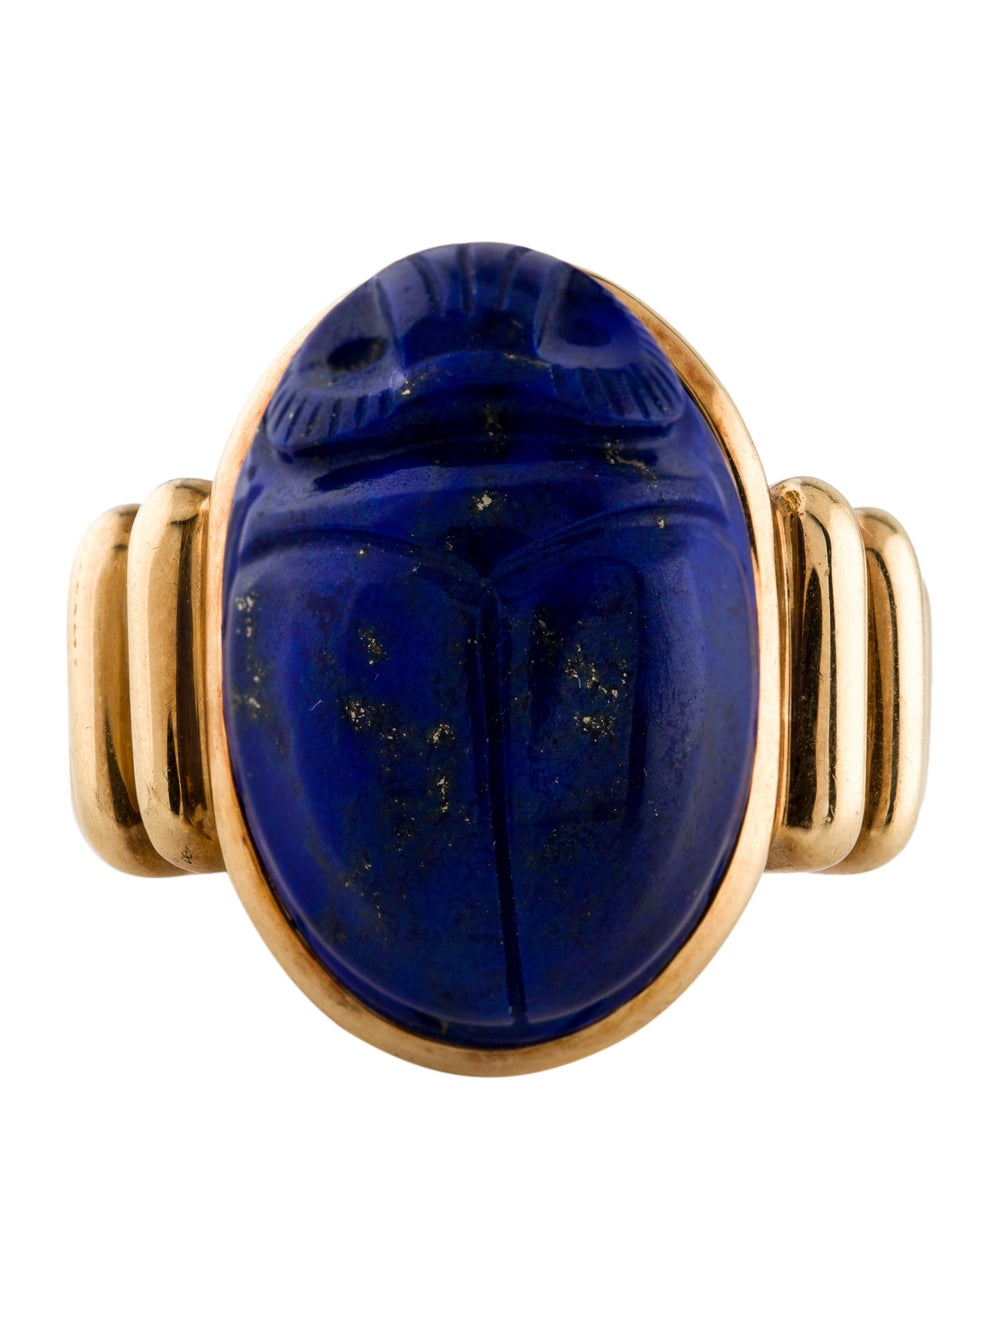 Scarab Swivel Ring Sterling Silver Gold Plated with Lapis Lazuli Cabochon